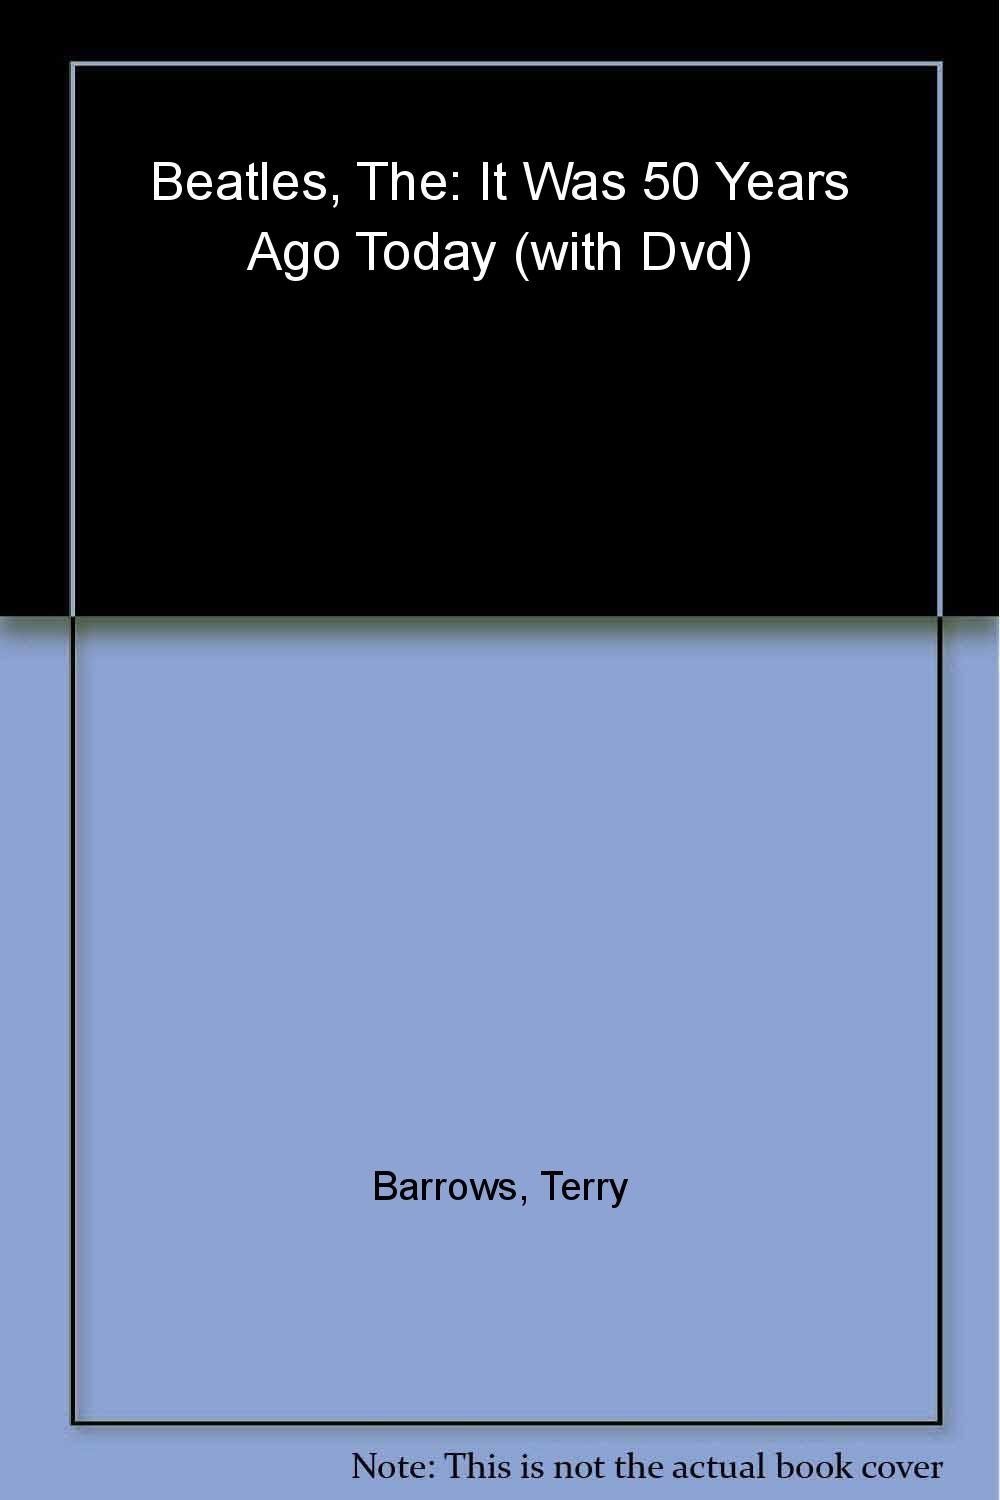 The Beatles: It Was 50 Years Ago Today PDF ePub fb2 book